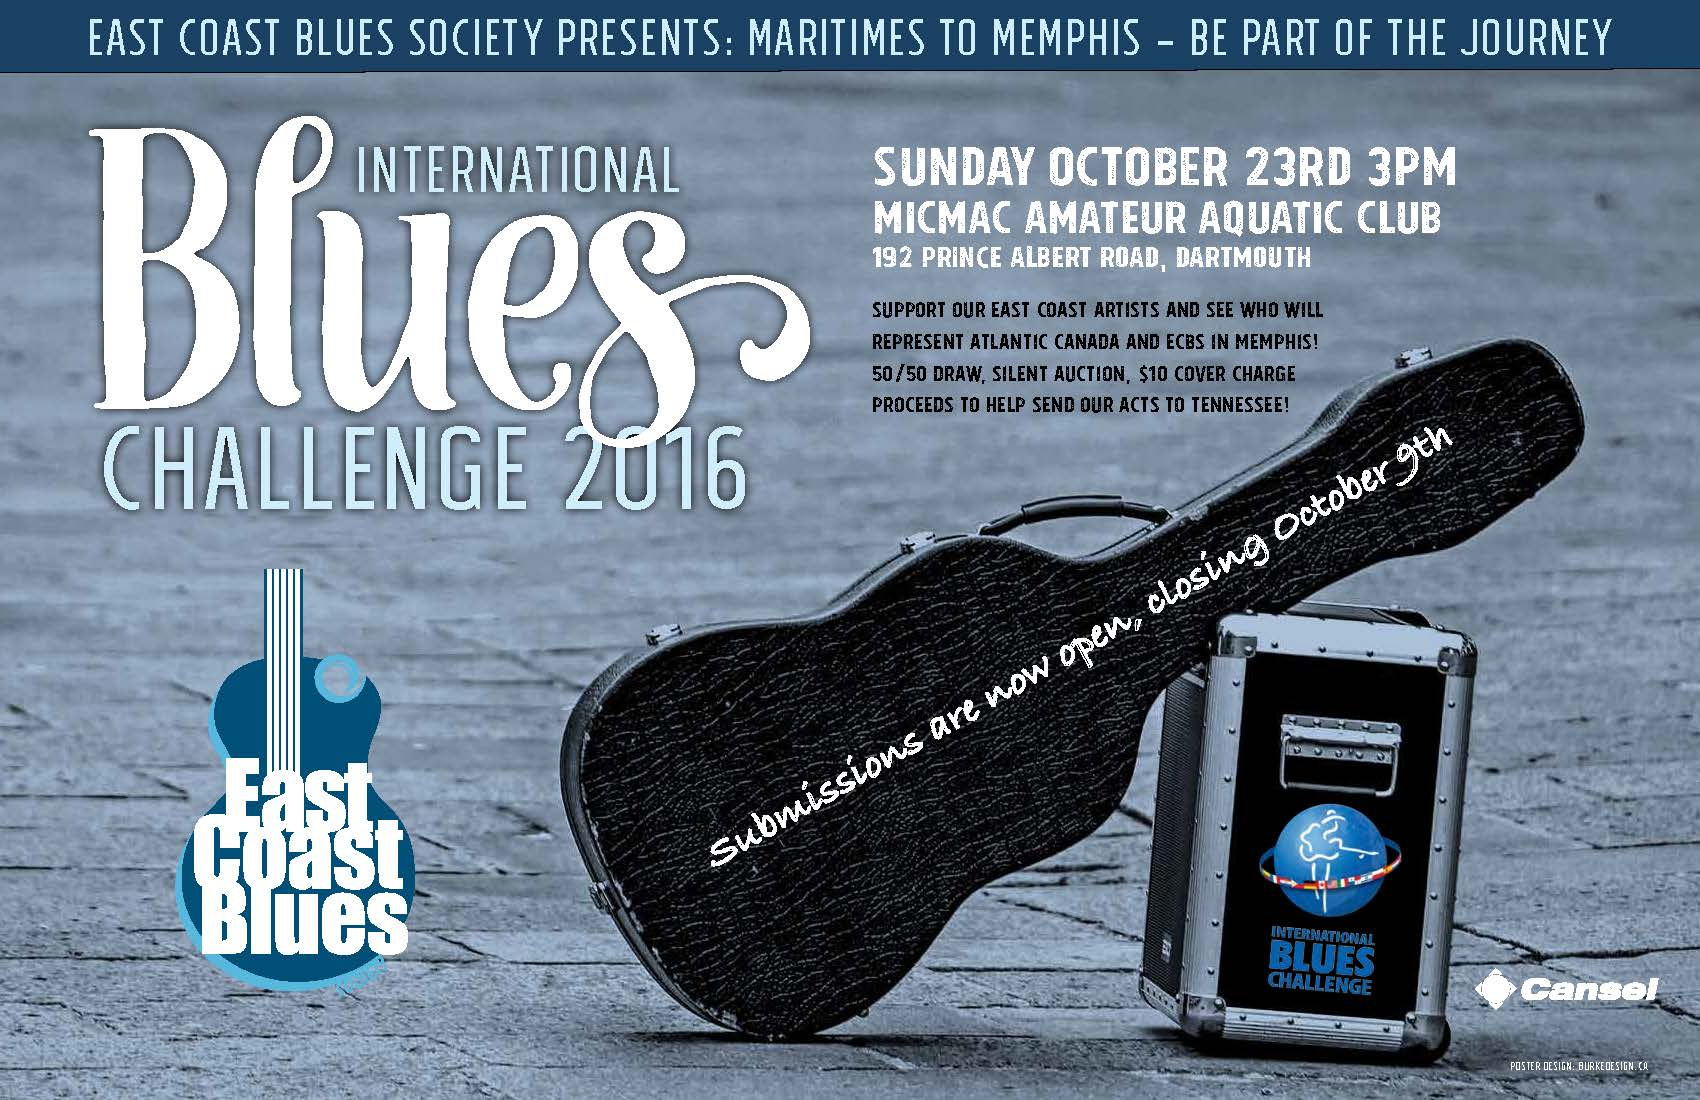 Submissions open for Maritimes To Memphis - Be Part Of the Journey